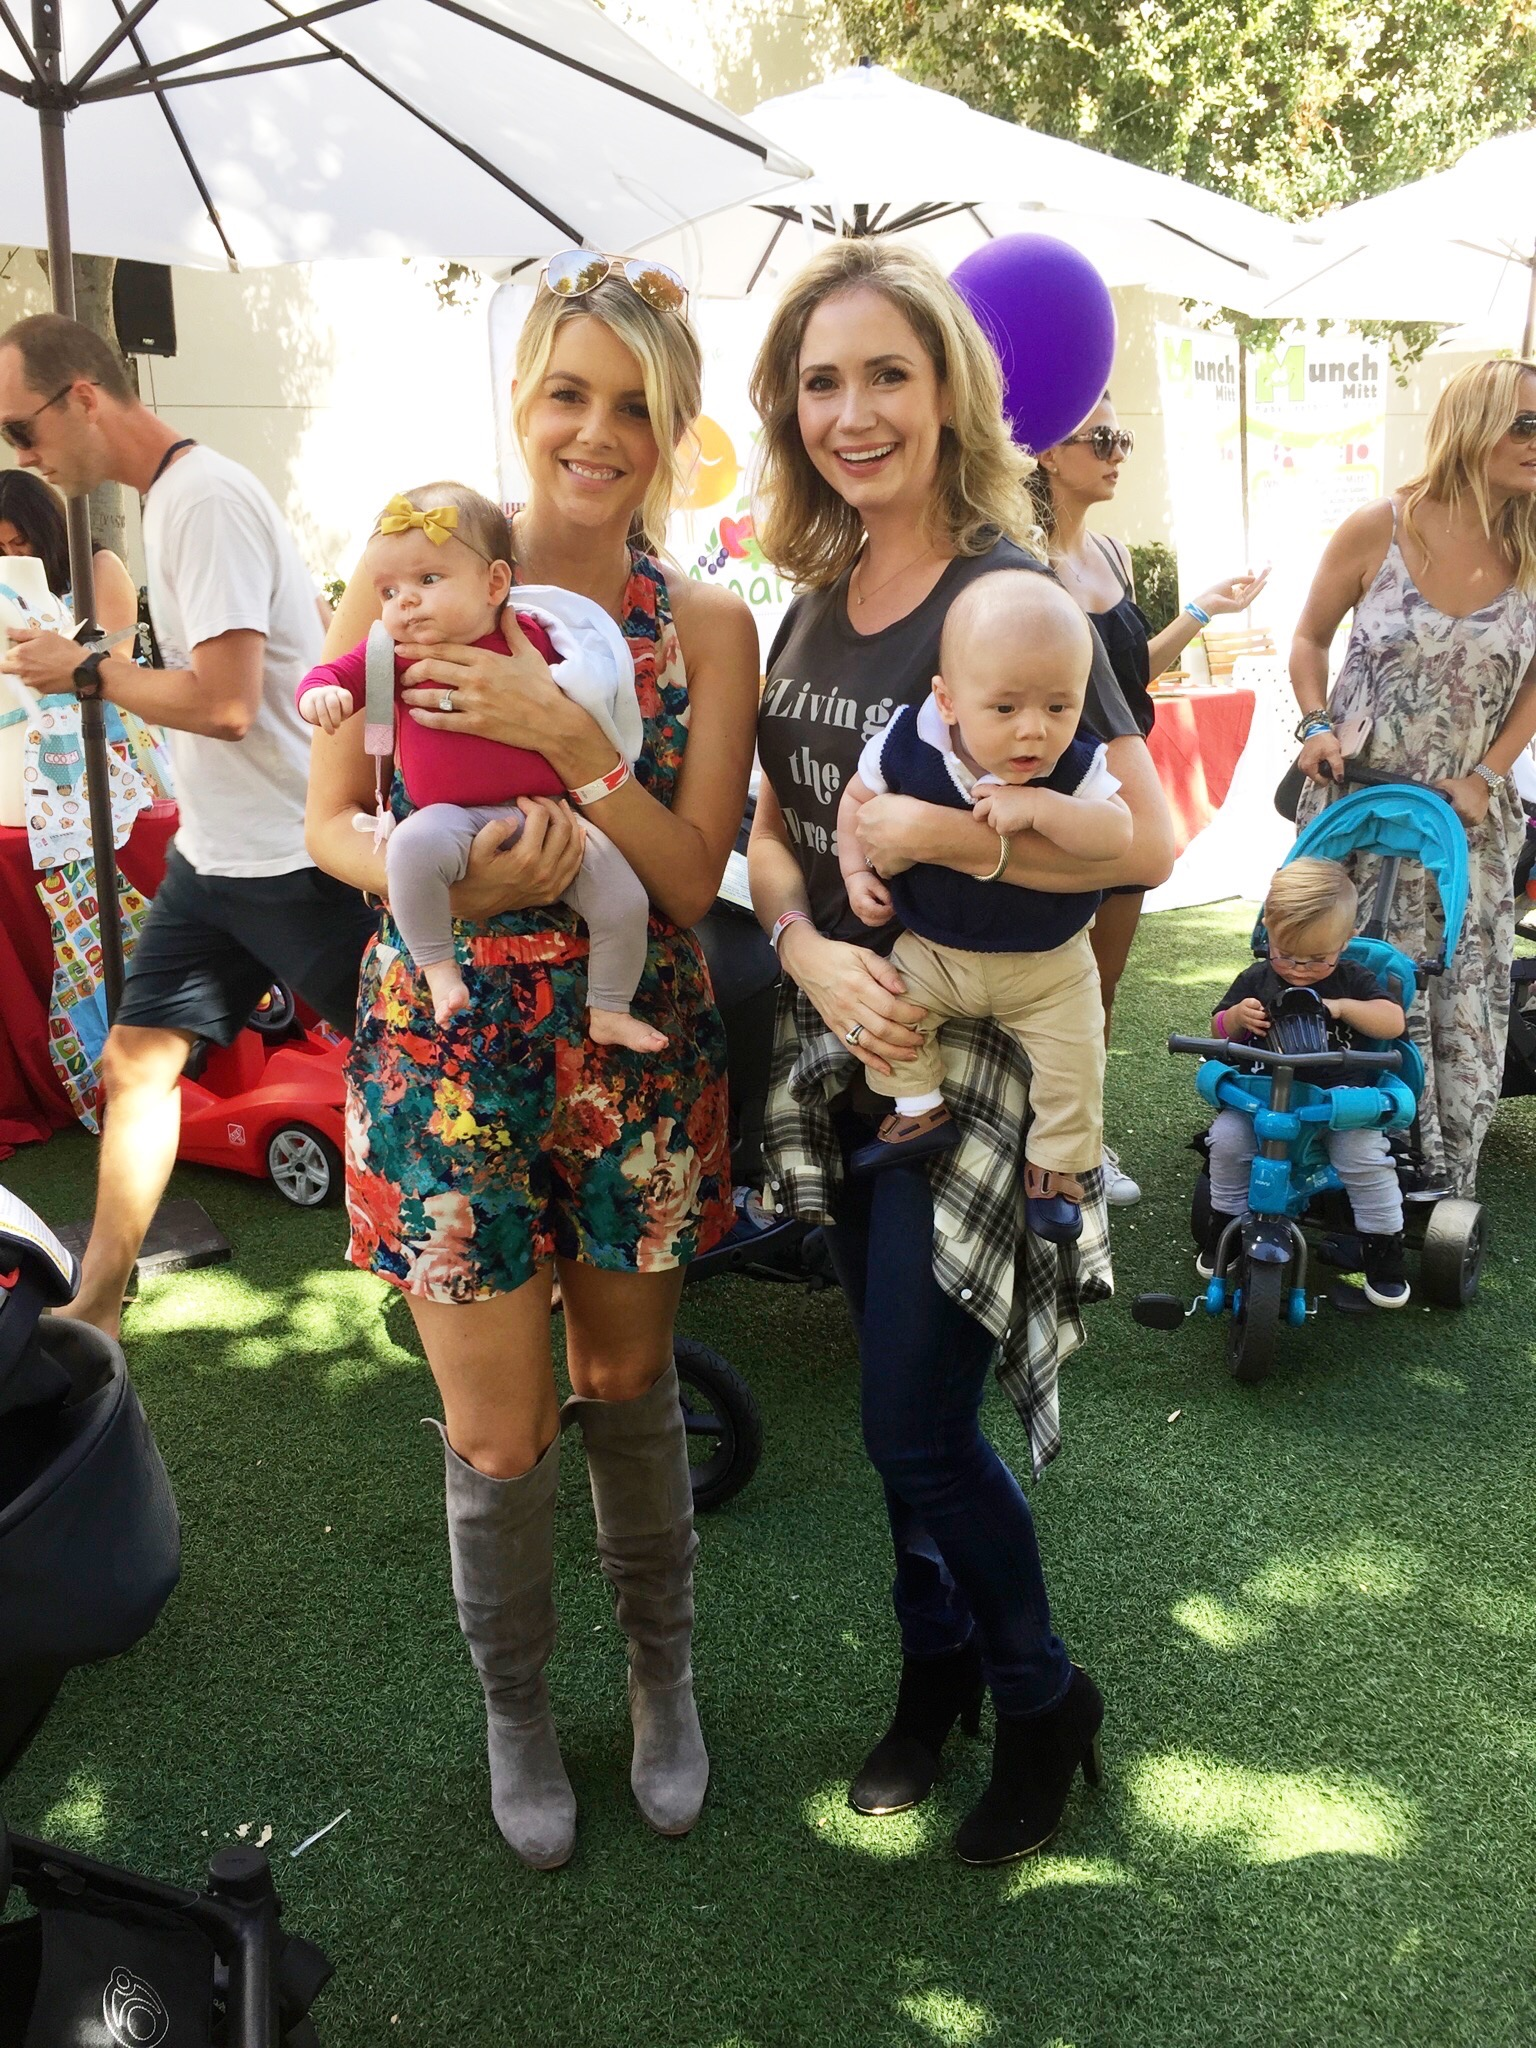 We got to grab a pic with Ali Fedotowsky and precious Molly.